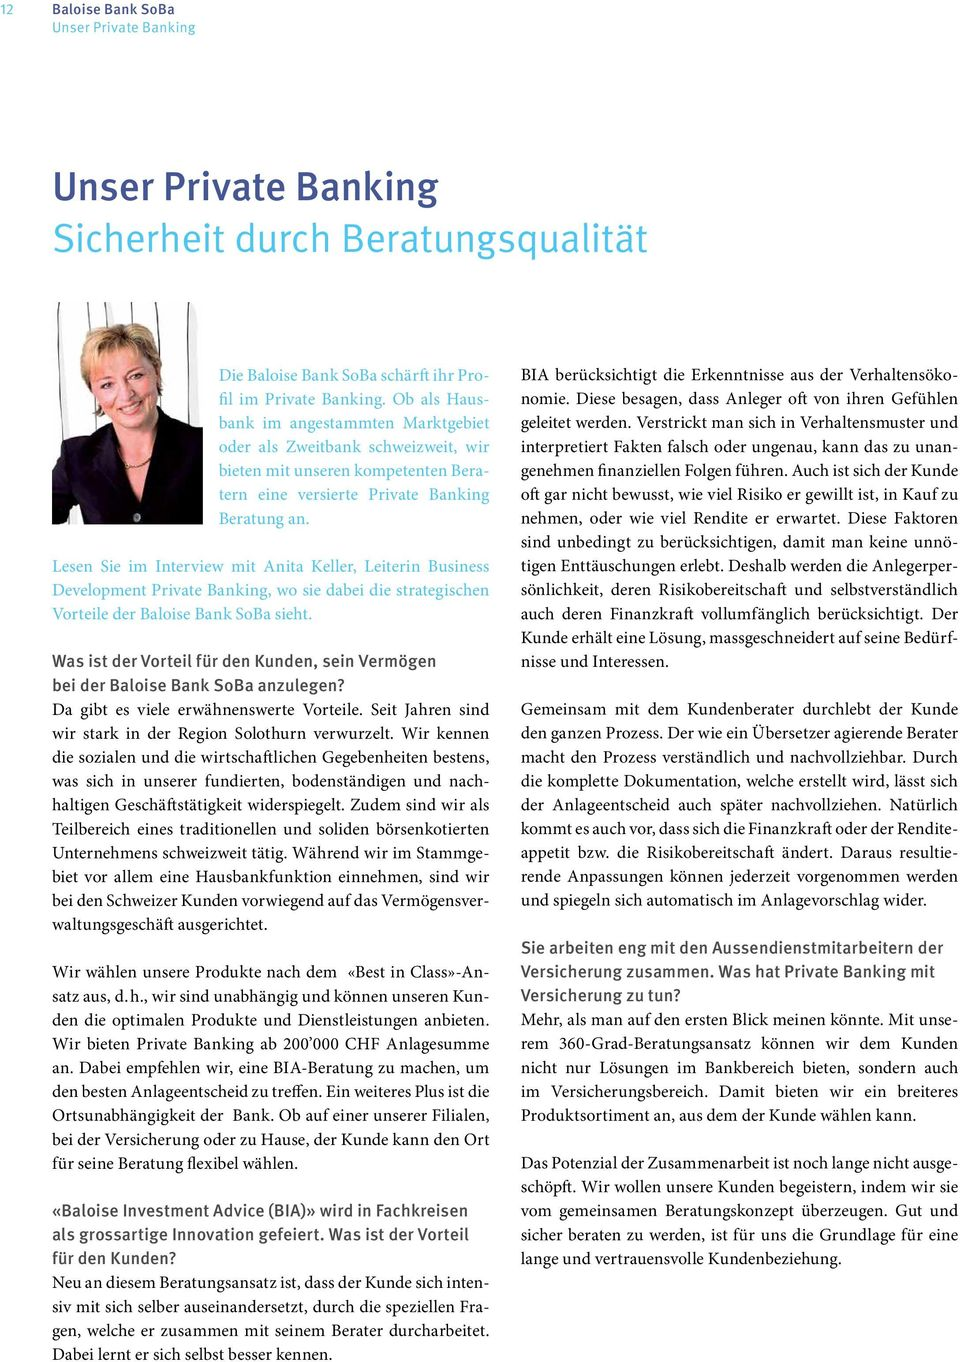 Lesen Sie im Interview mit Anita Keller, Leiterin Business Development Private Banking, wo sie dabei die strategischen Vorteile der Baloise Bank SoBa sieht.